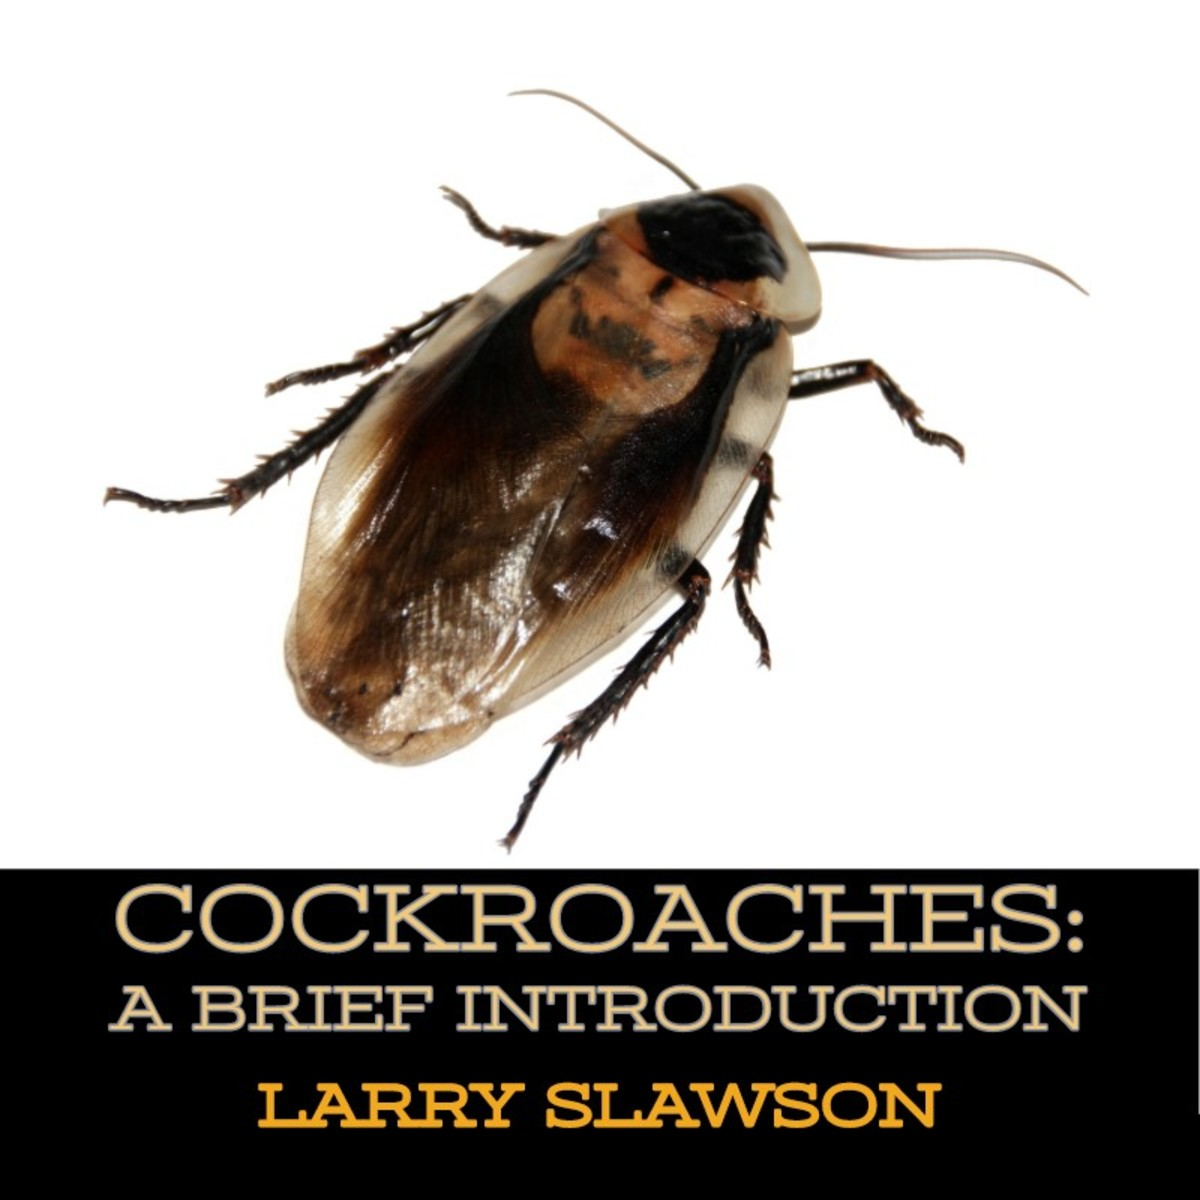 Cockroaches: A Brief Introduction